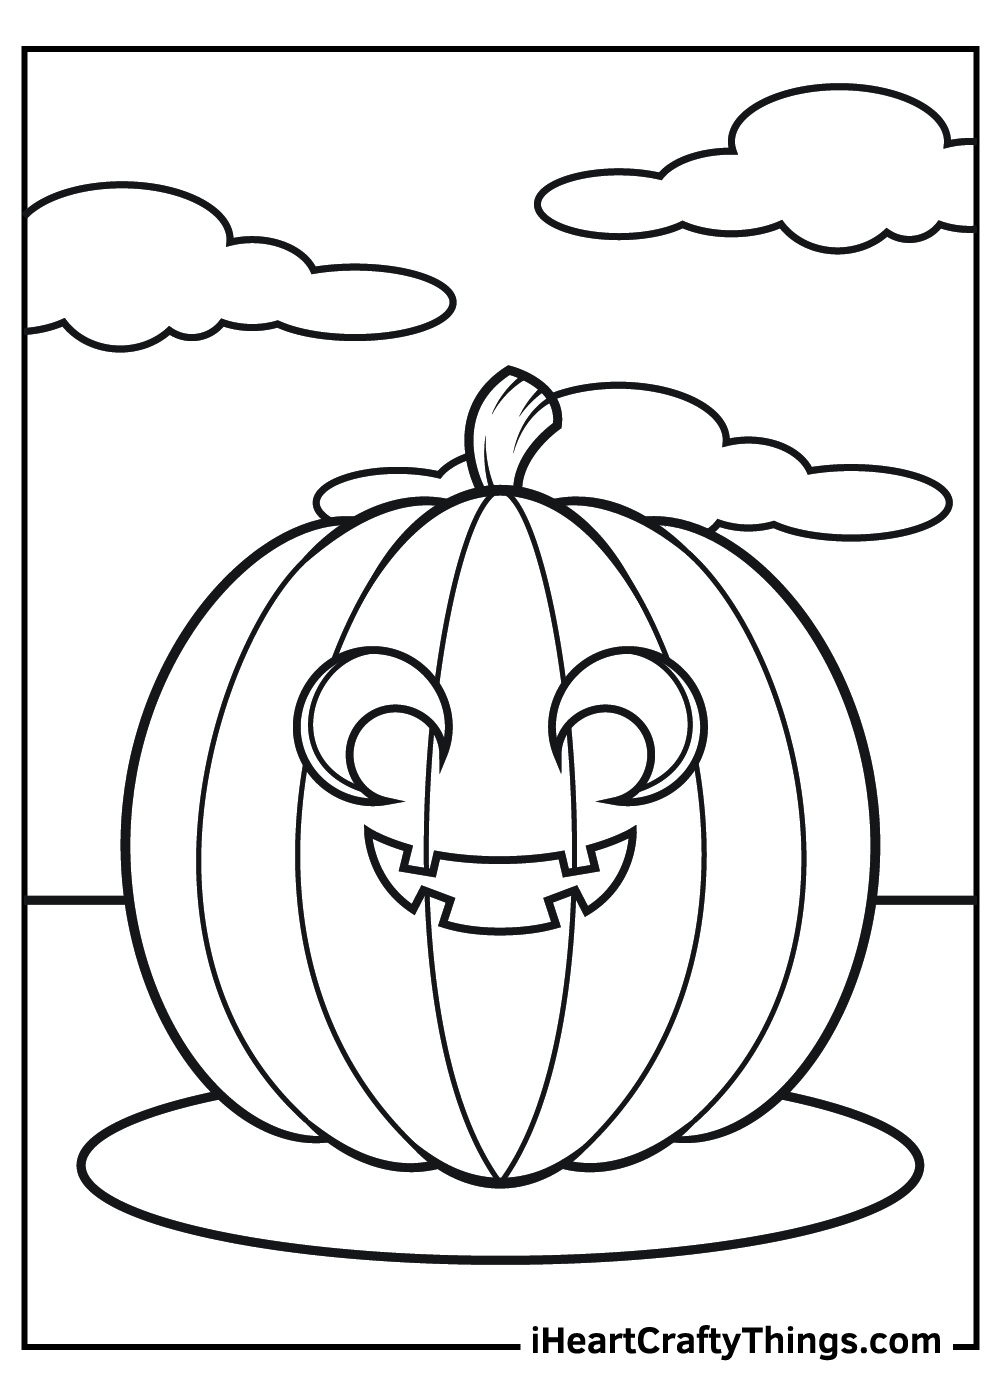 friendly jack o lantern coloring pages